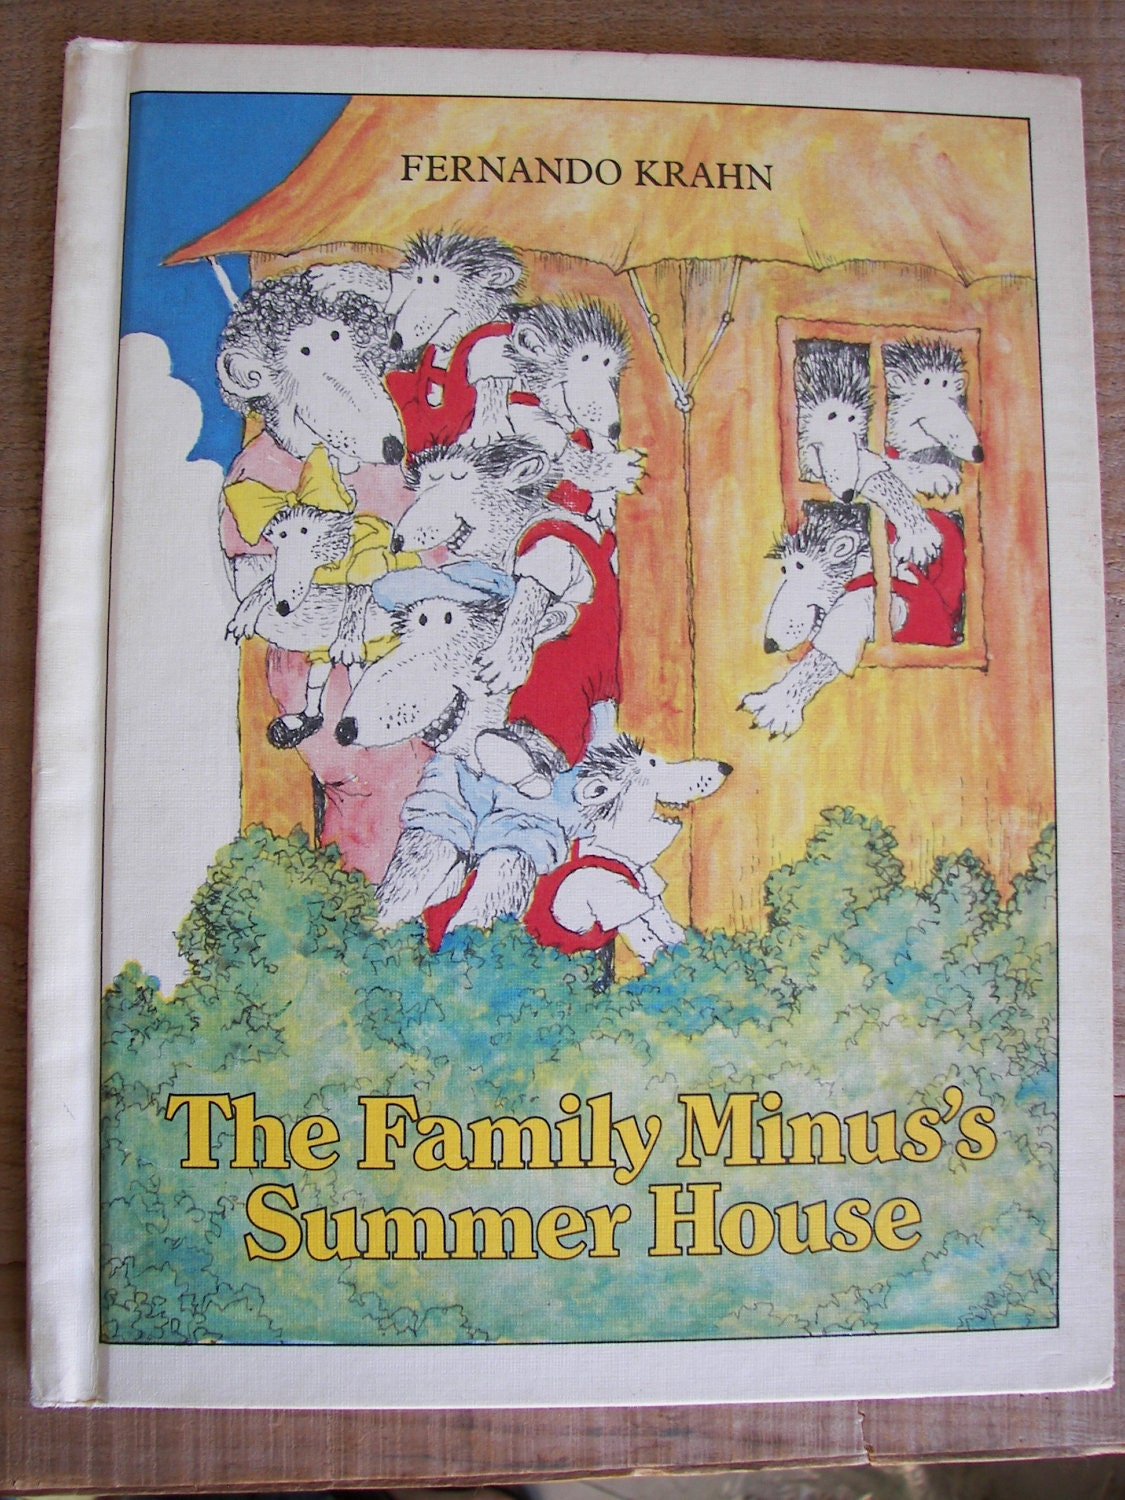 The Family Minus's Summer House by Fernando Krahn - 1980 copyright Vintage (hardcover) - TheBookTree